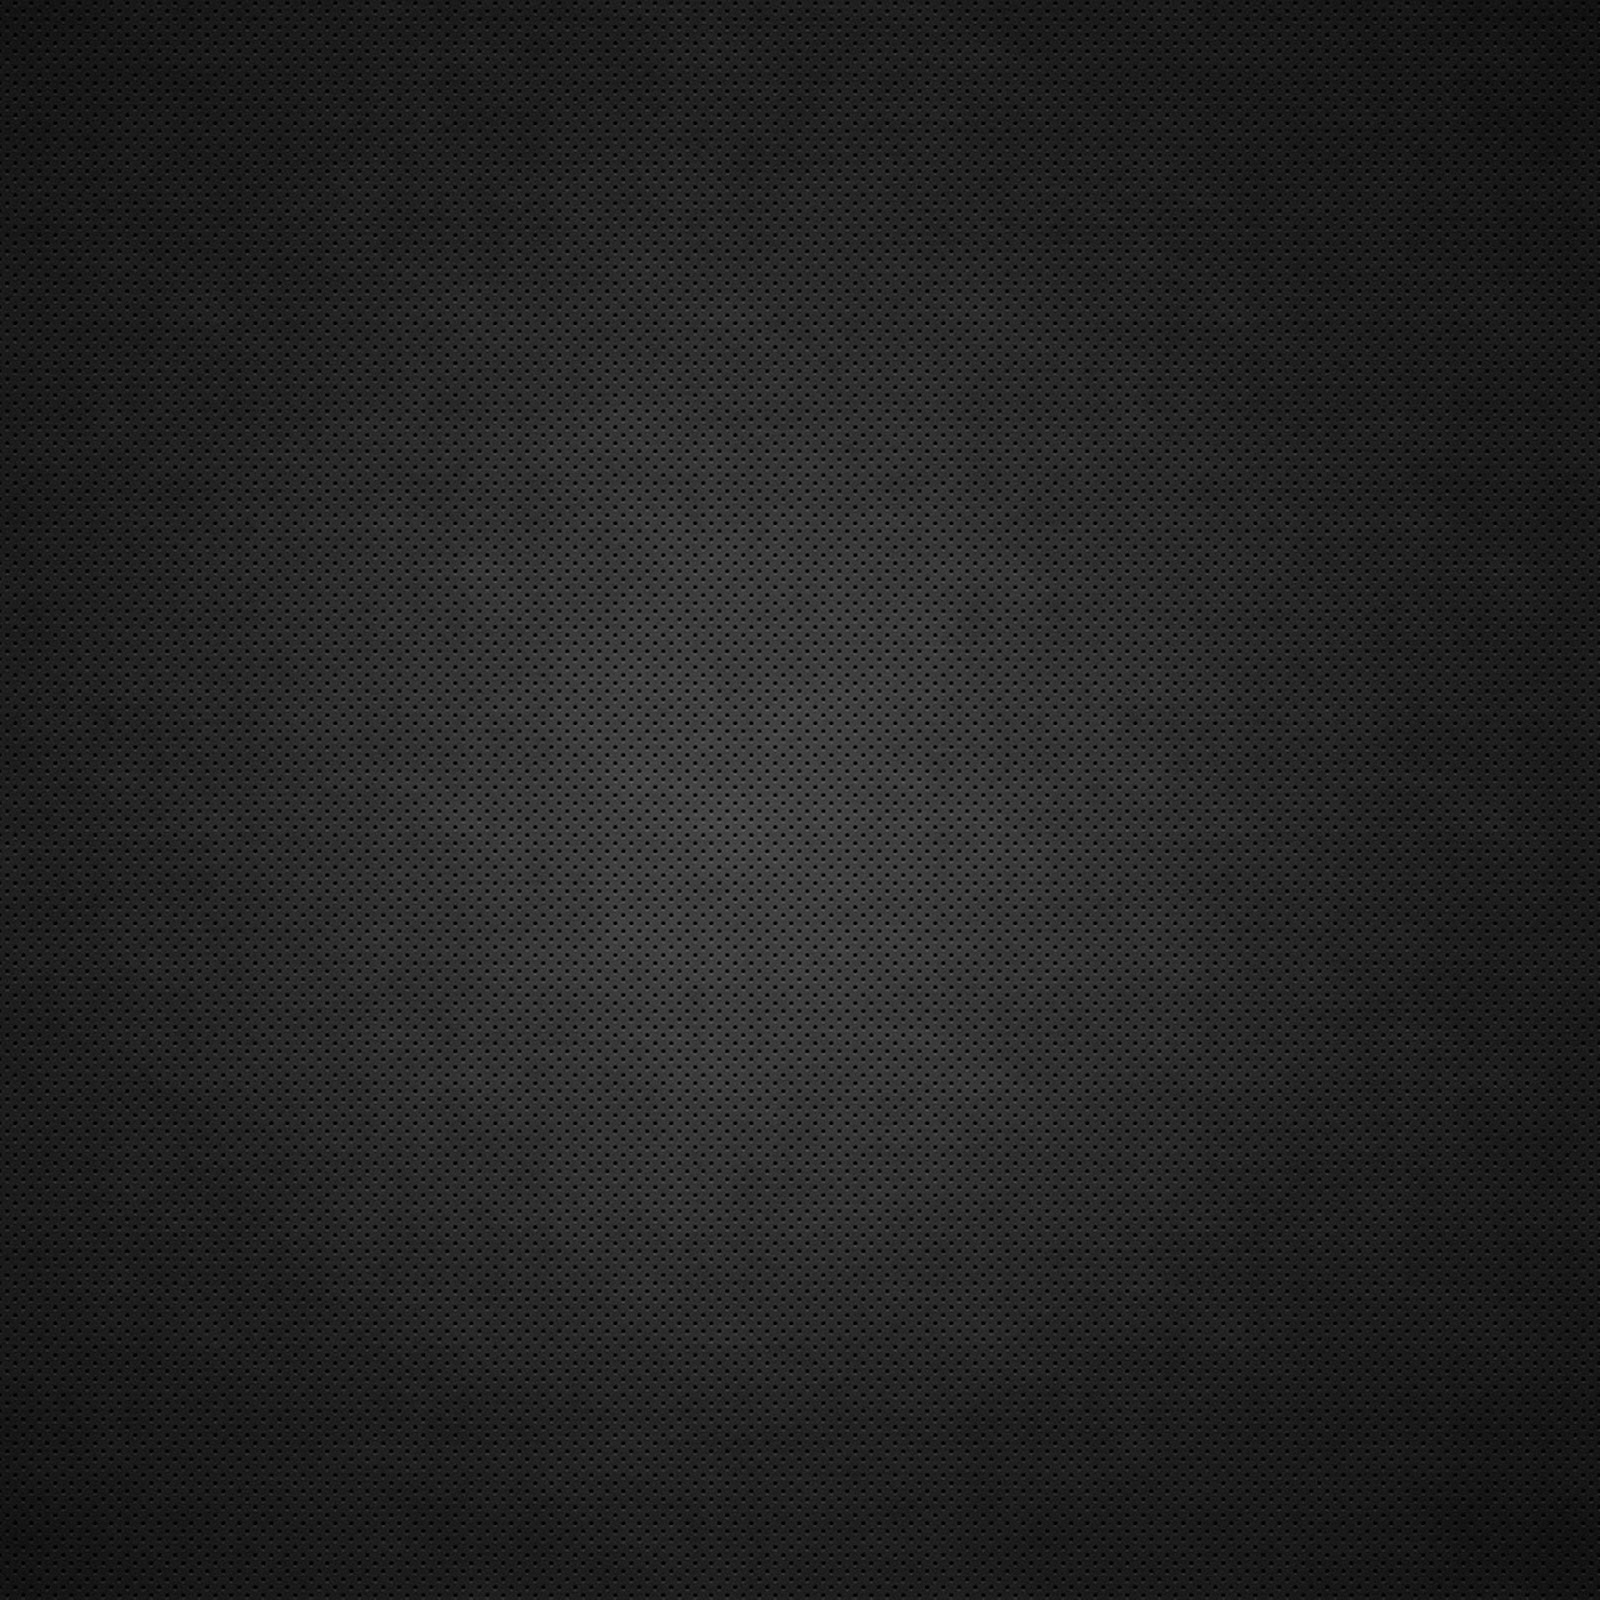 New iPad Black Wallpapers Retina iPad wallpaper 1600x1600